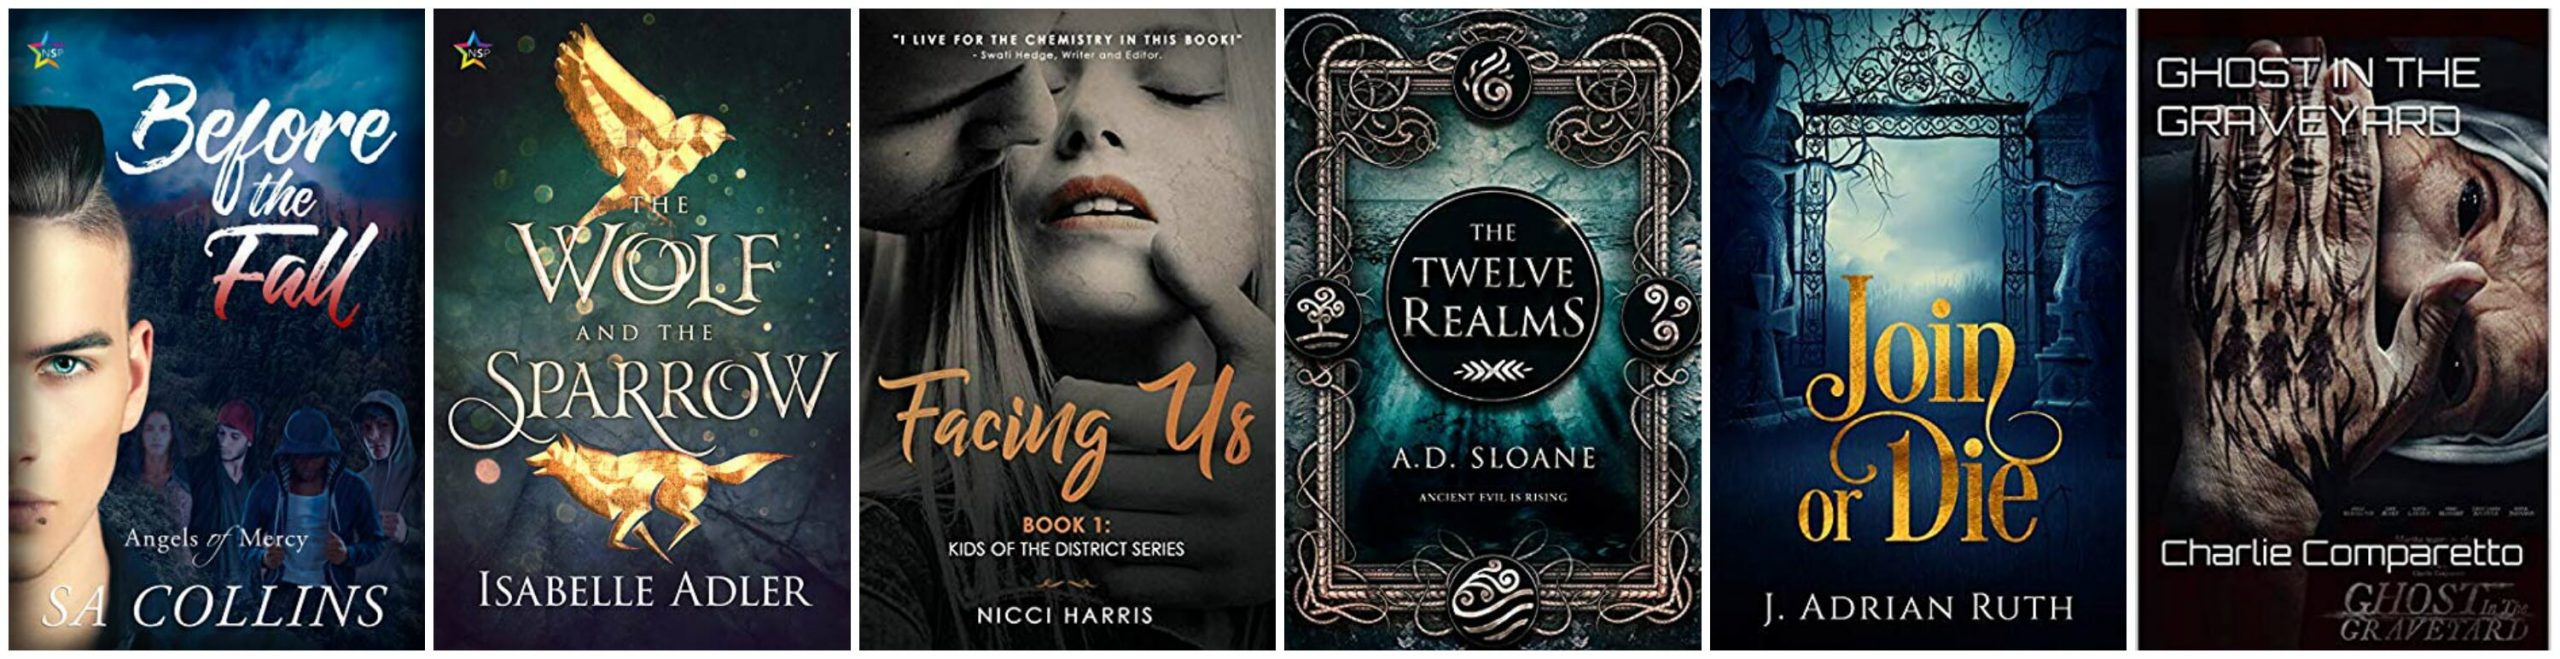 stacking the shelves book haul week 186